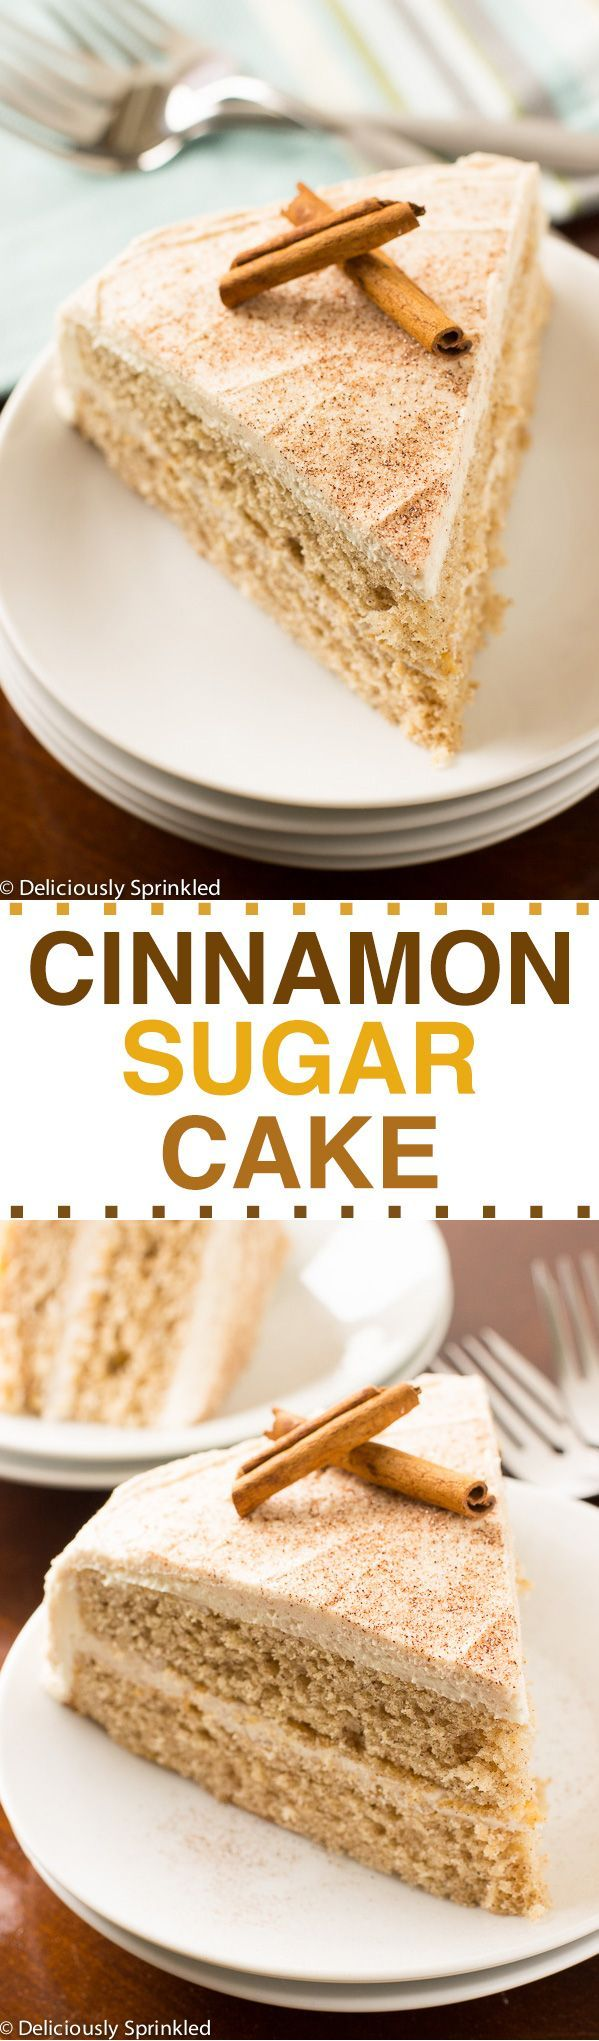 The BEST Cinnamon-Sugar Cake (Snickerdoodle Cake)